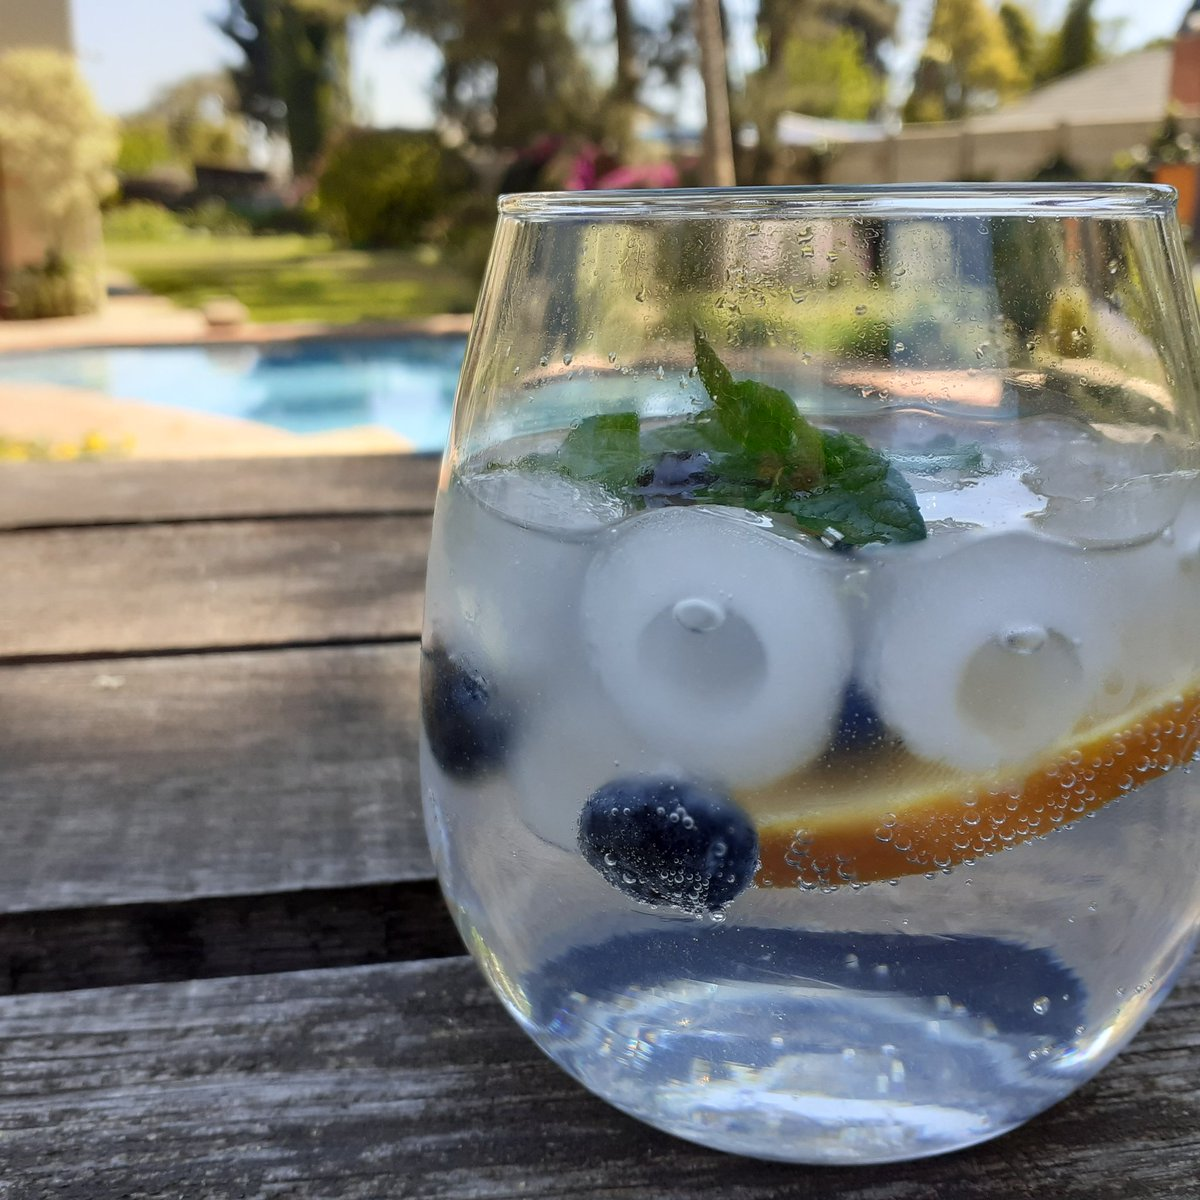 Gin and tonic in the heat!!! Top tier https://t.co/sIeaCrSGfc